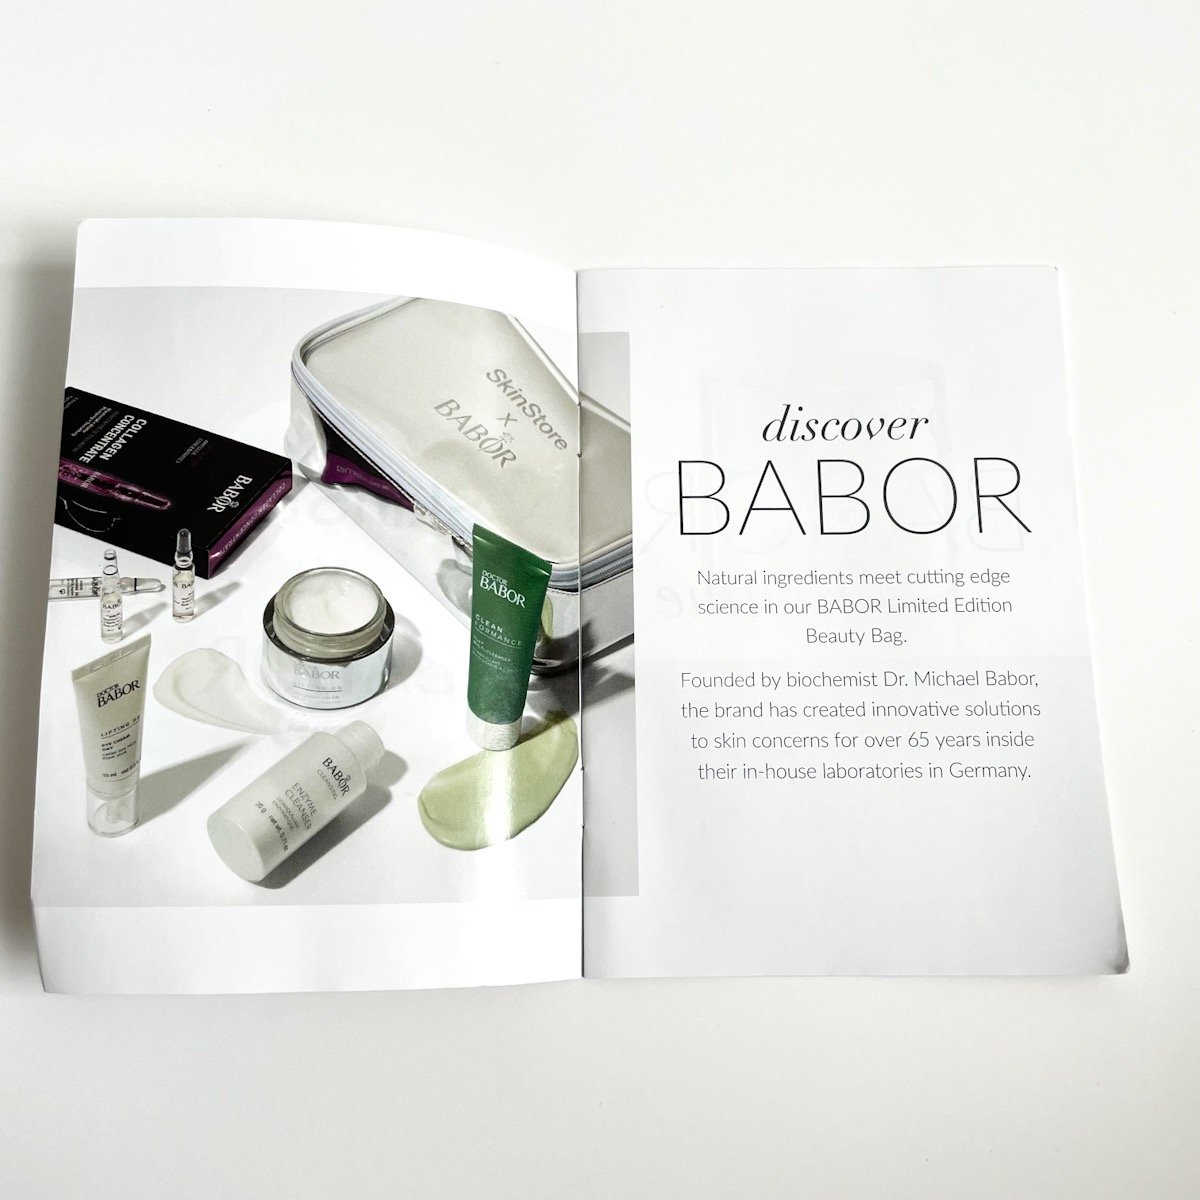 info booklet detailing products inside